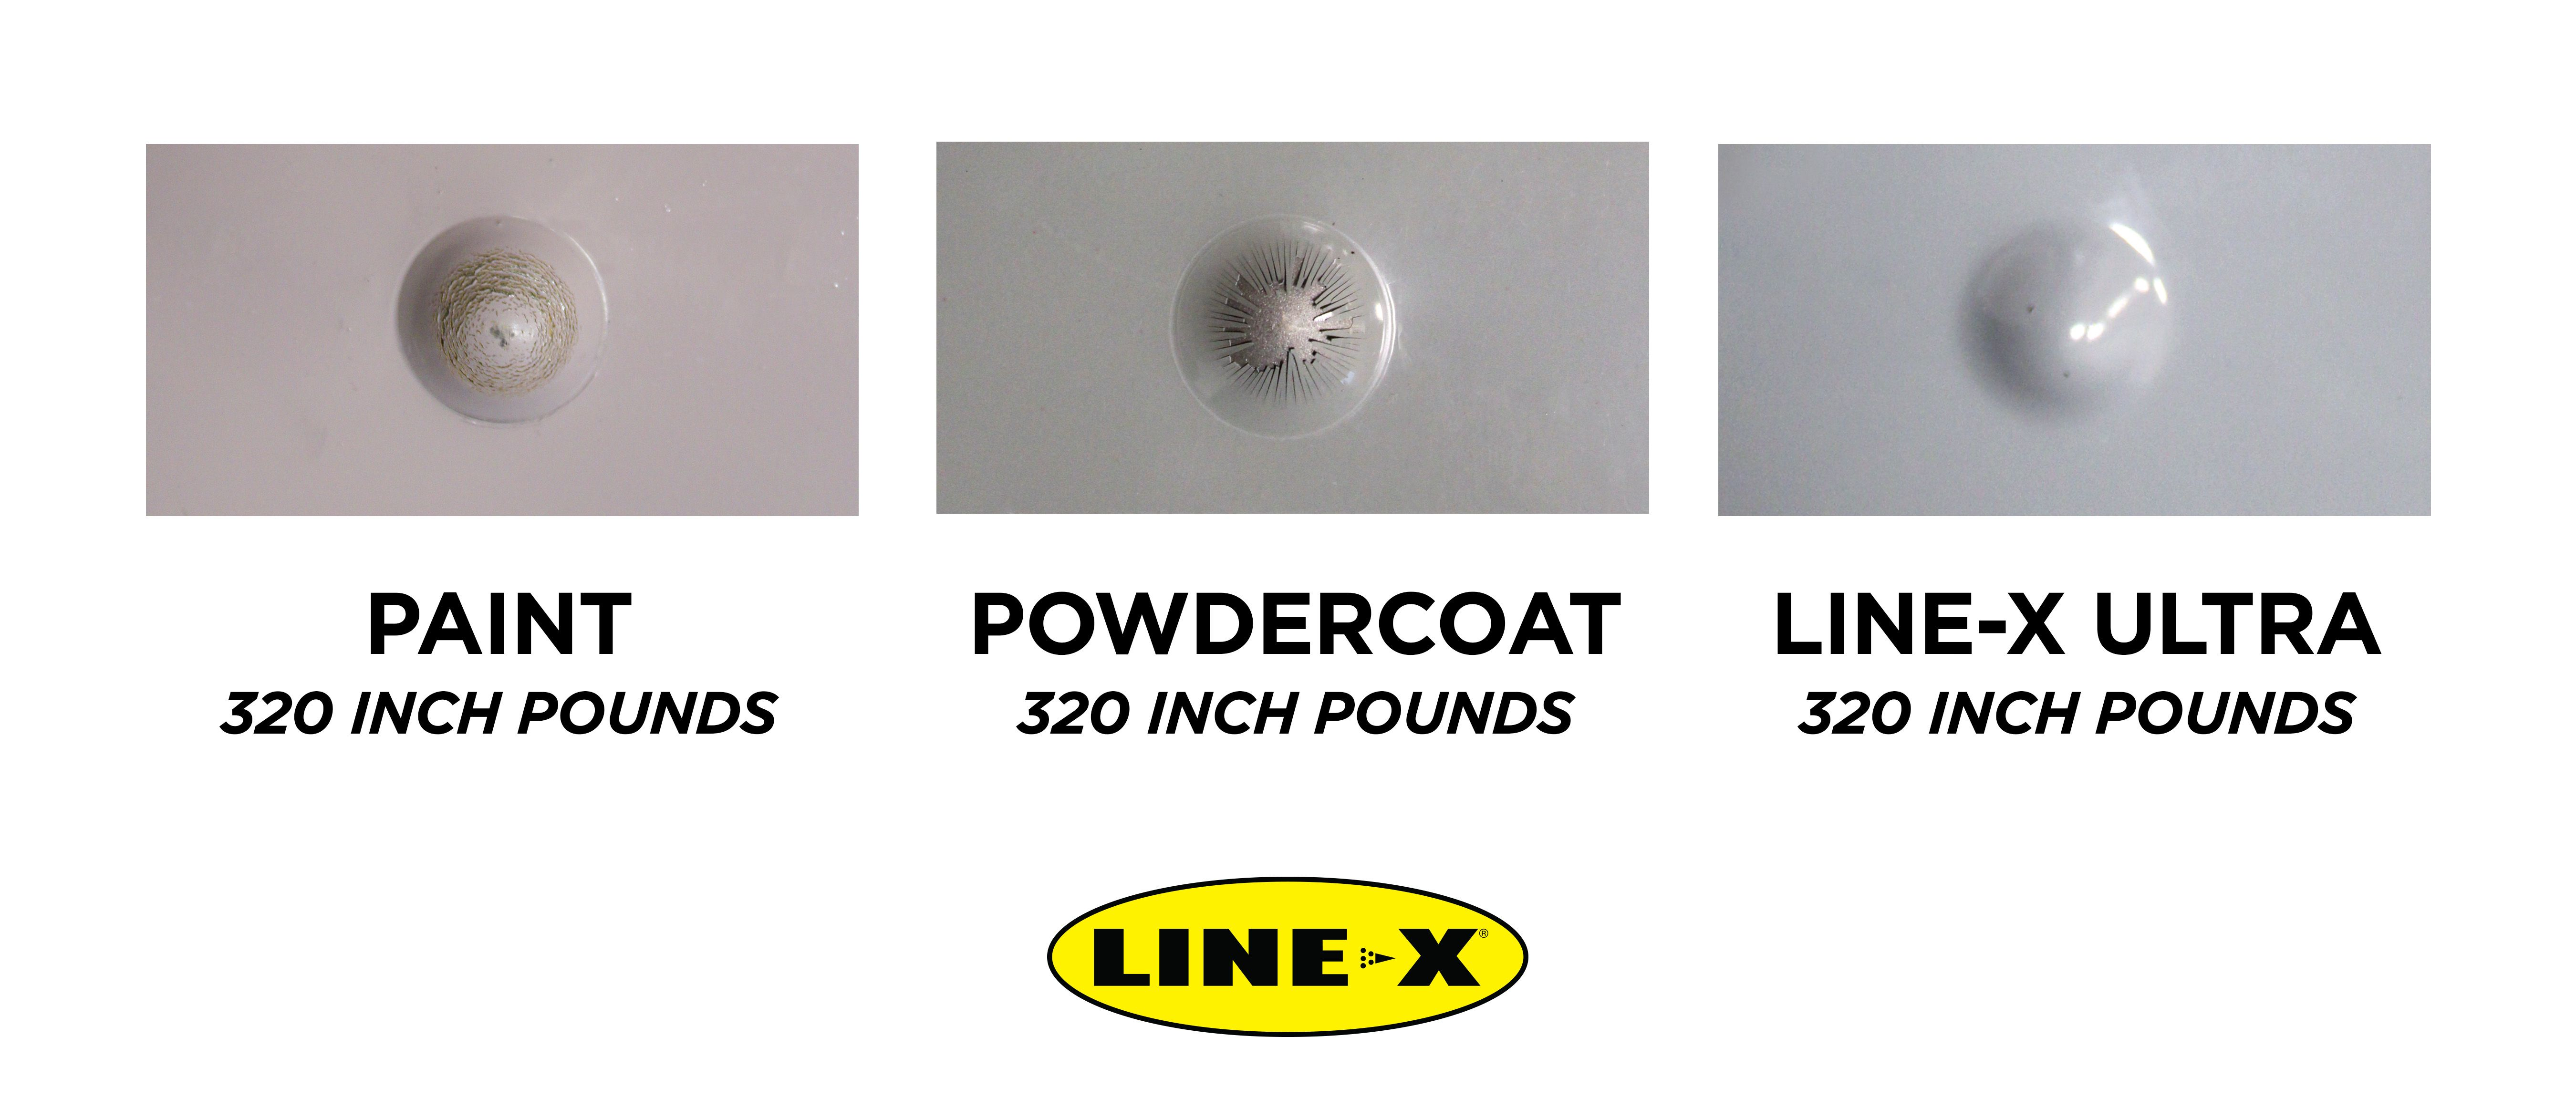 What S The Difference Between Paint Powdercoat And Line X Ultra A Lot